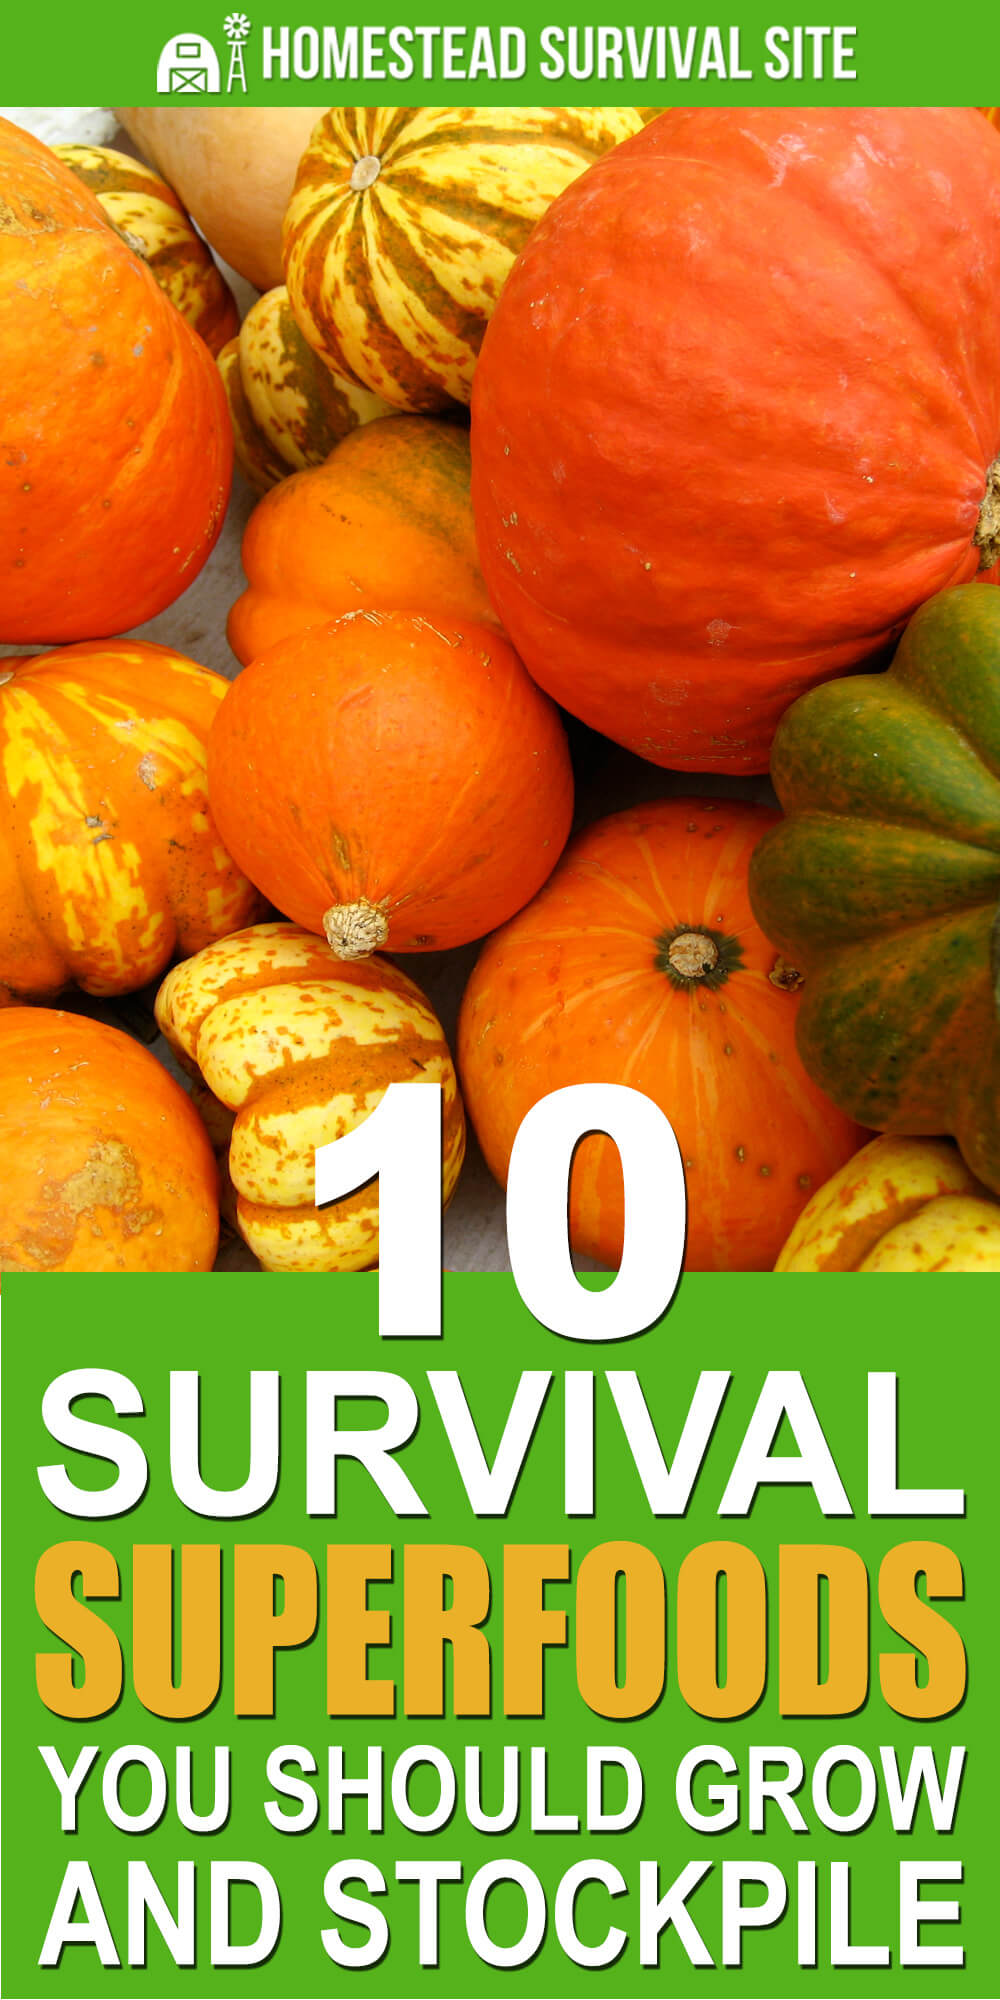 10 Survival Superfoods You Should Grow and Stockpile